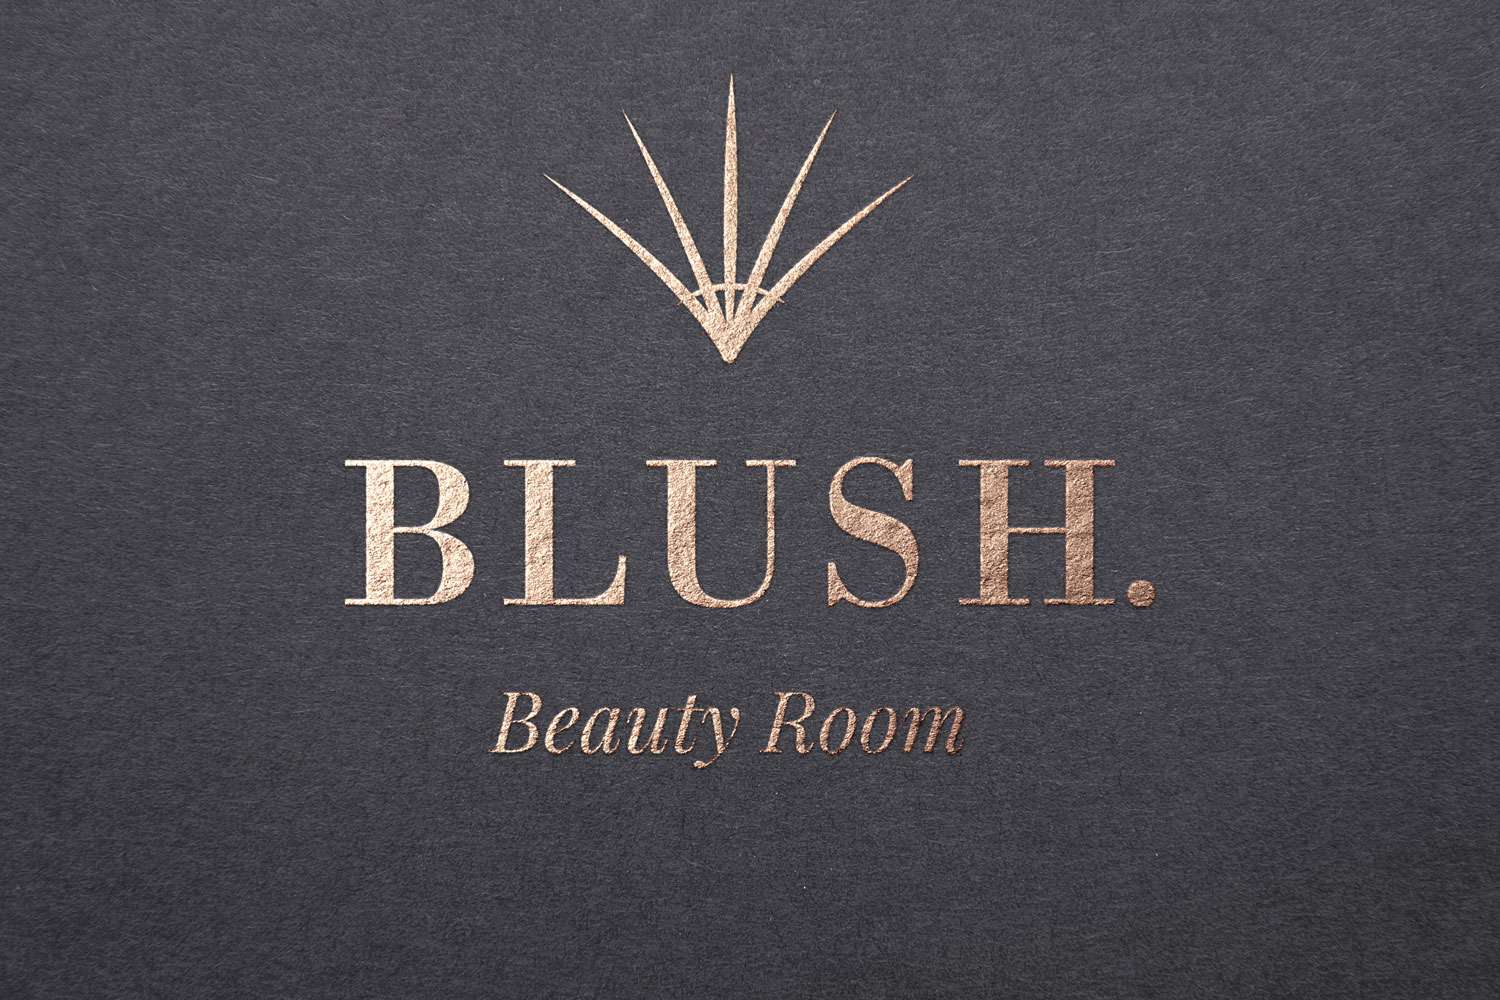 Rebrand of the Blush logo included creation of a custom symbol and a typography update.